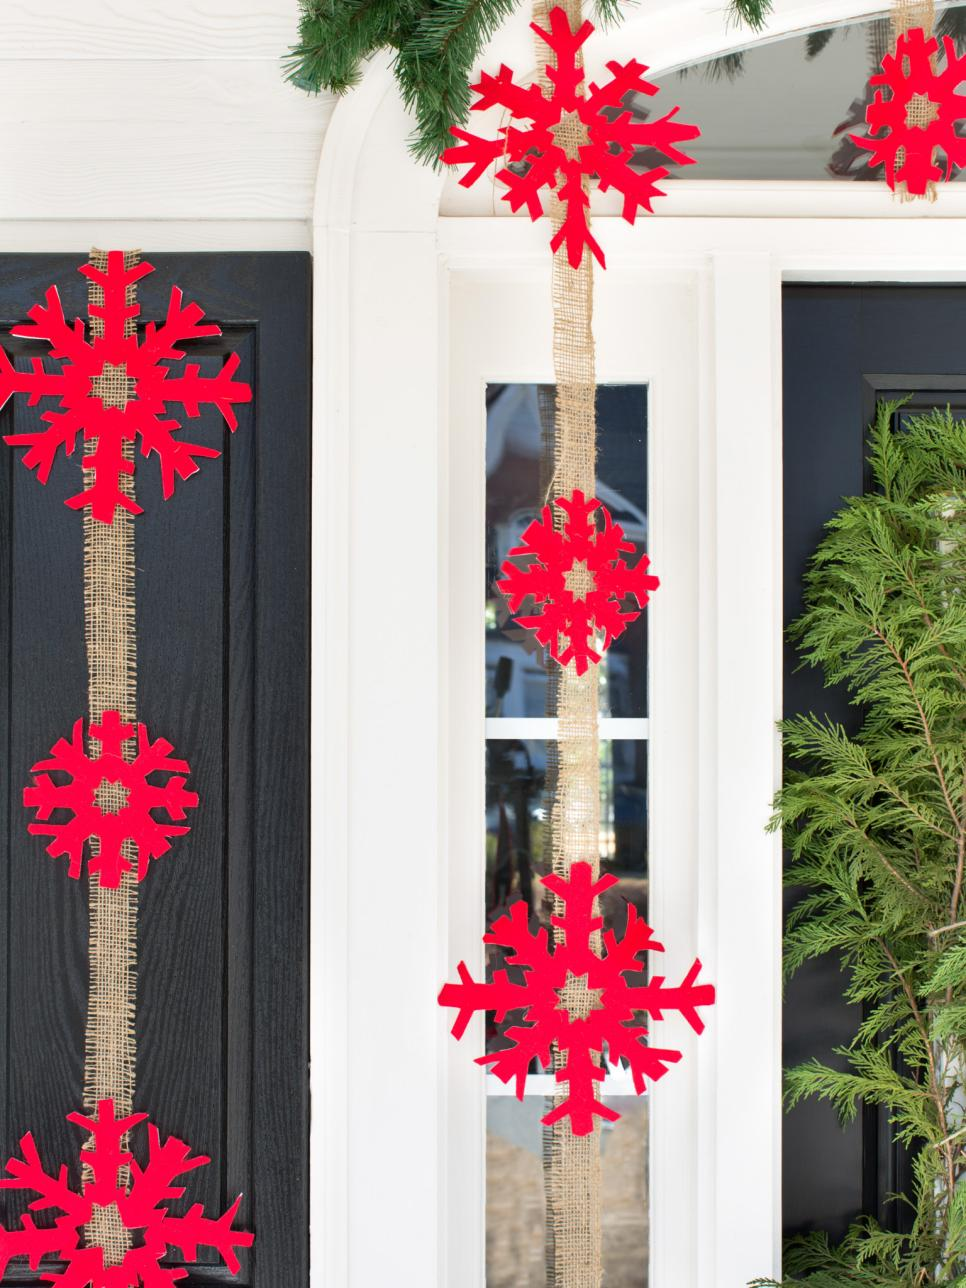 Outdoor Holiday Decorations | HGTV